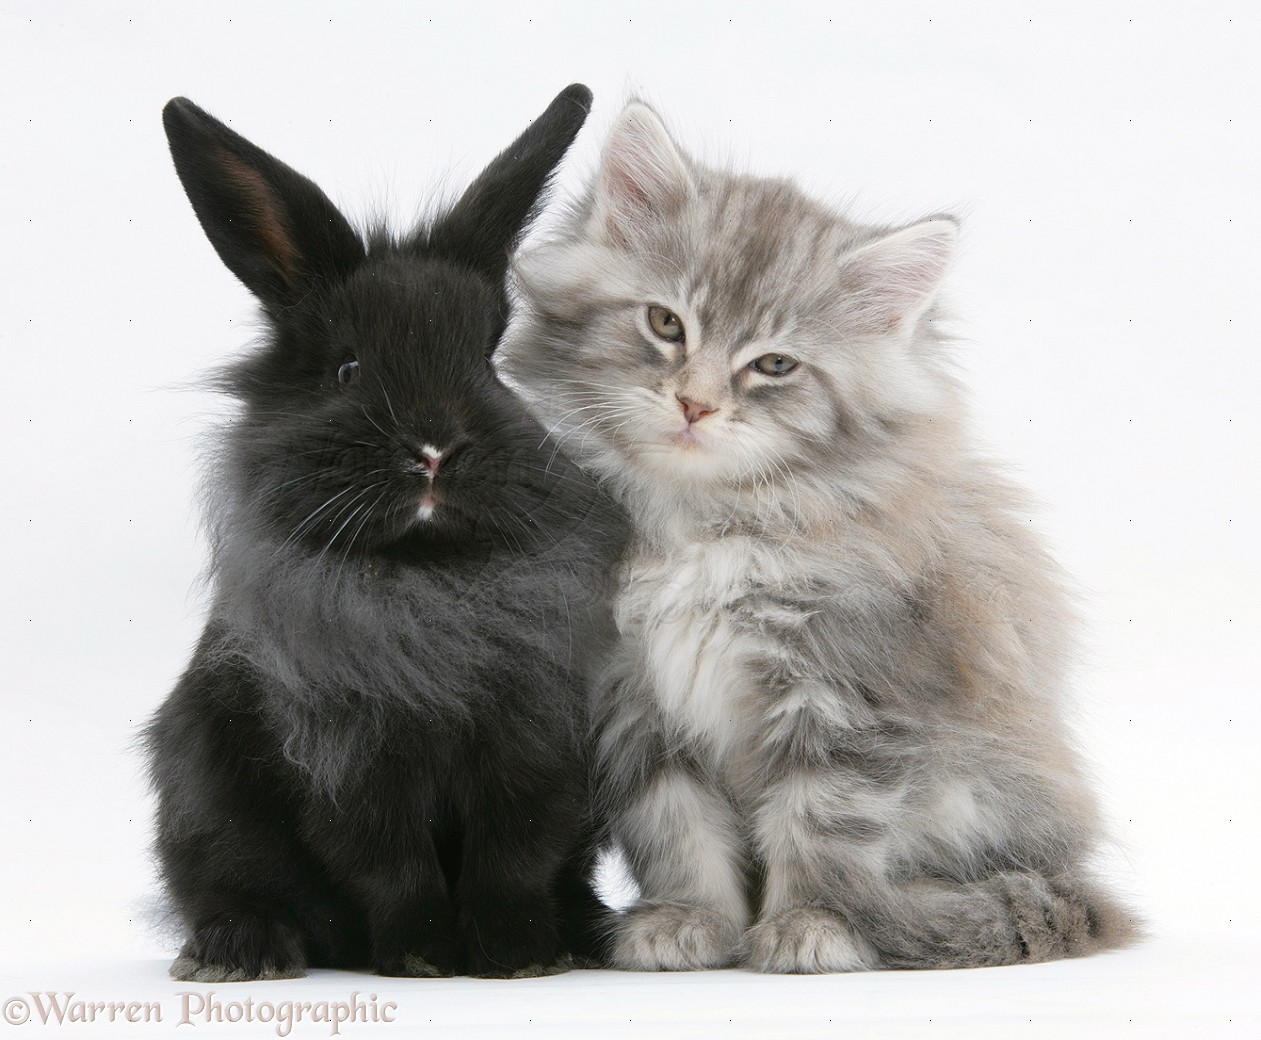 Pets Maine Coon Kitten And Black Rabbit Photo Wp19500